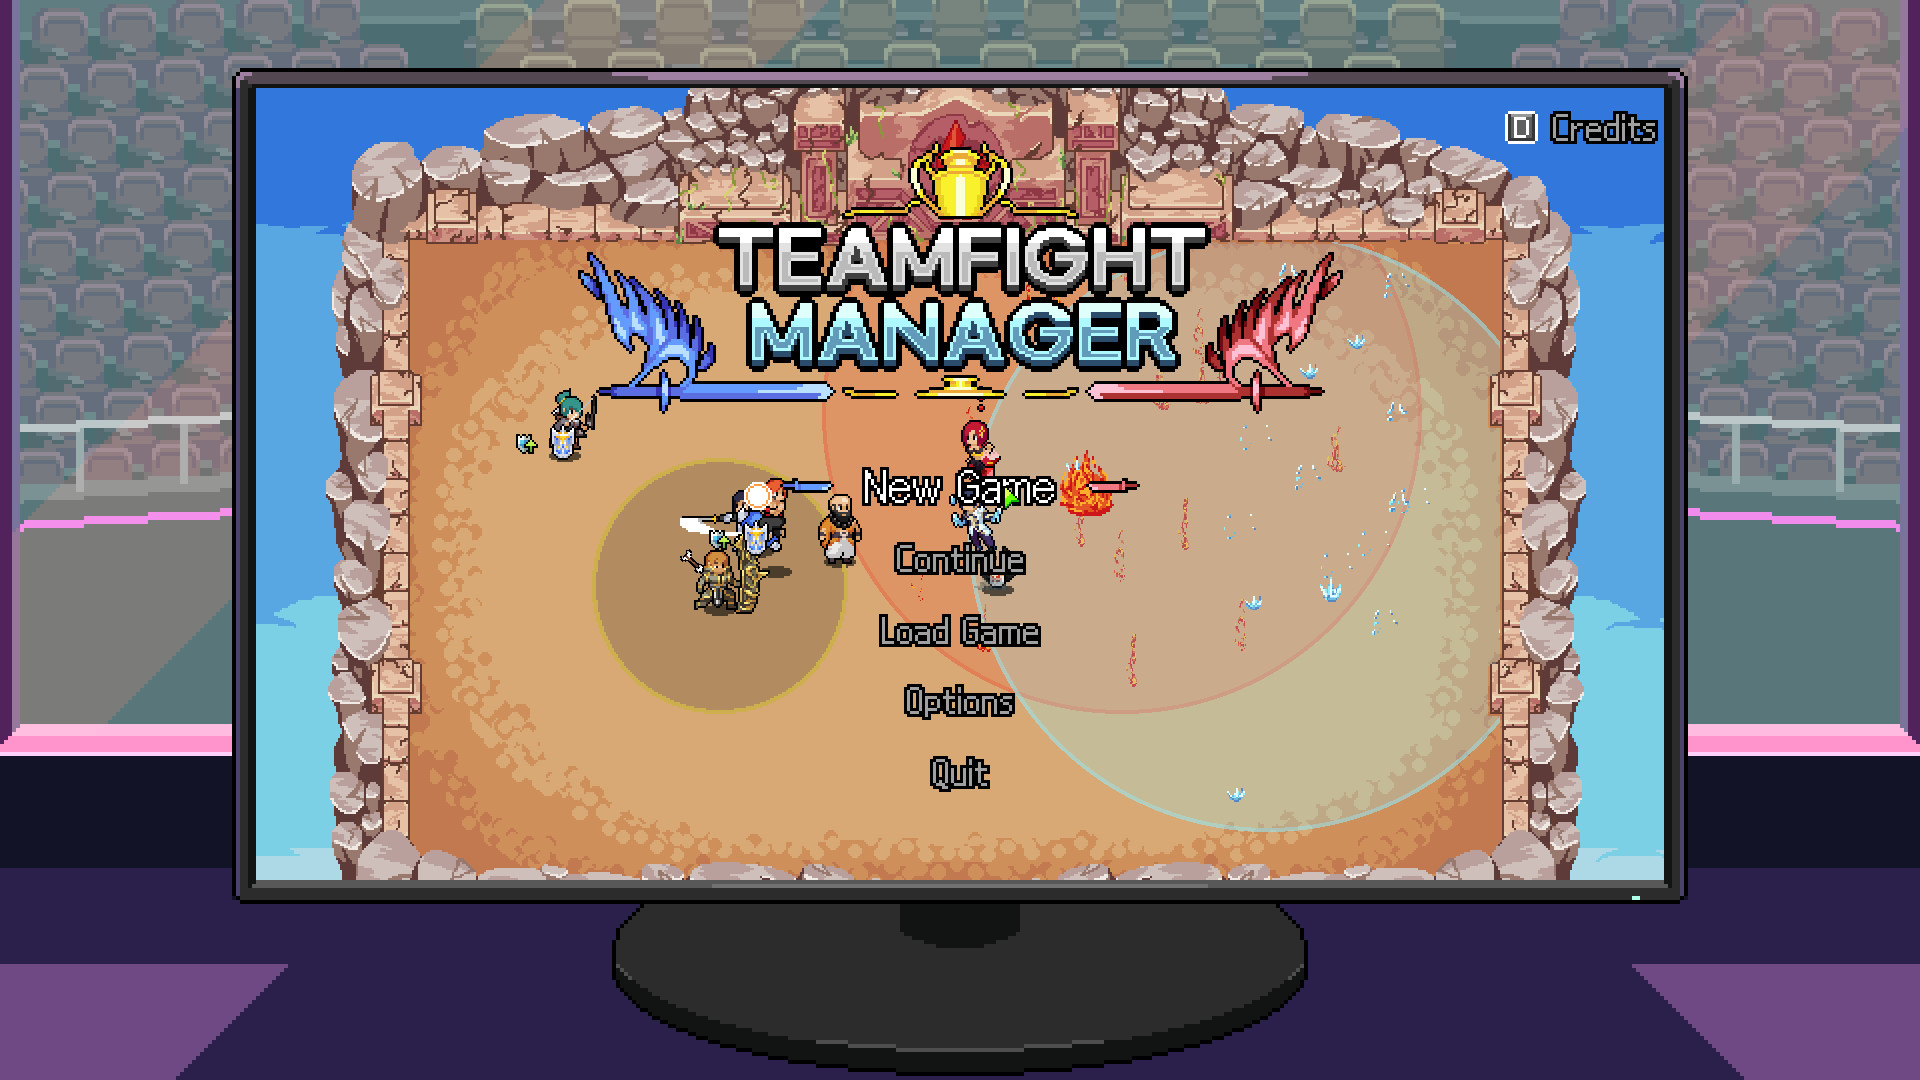 Find the best laptop for Teamfight Manager